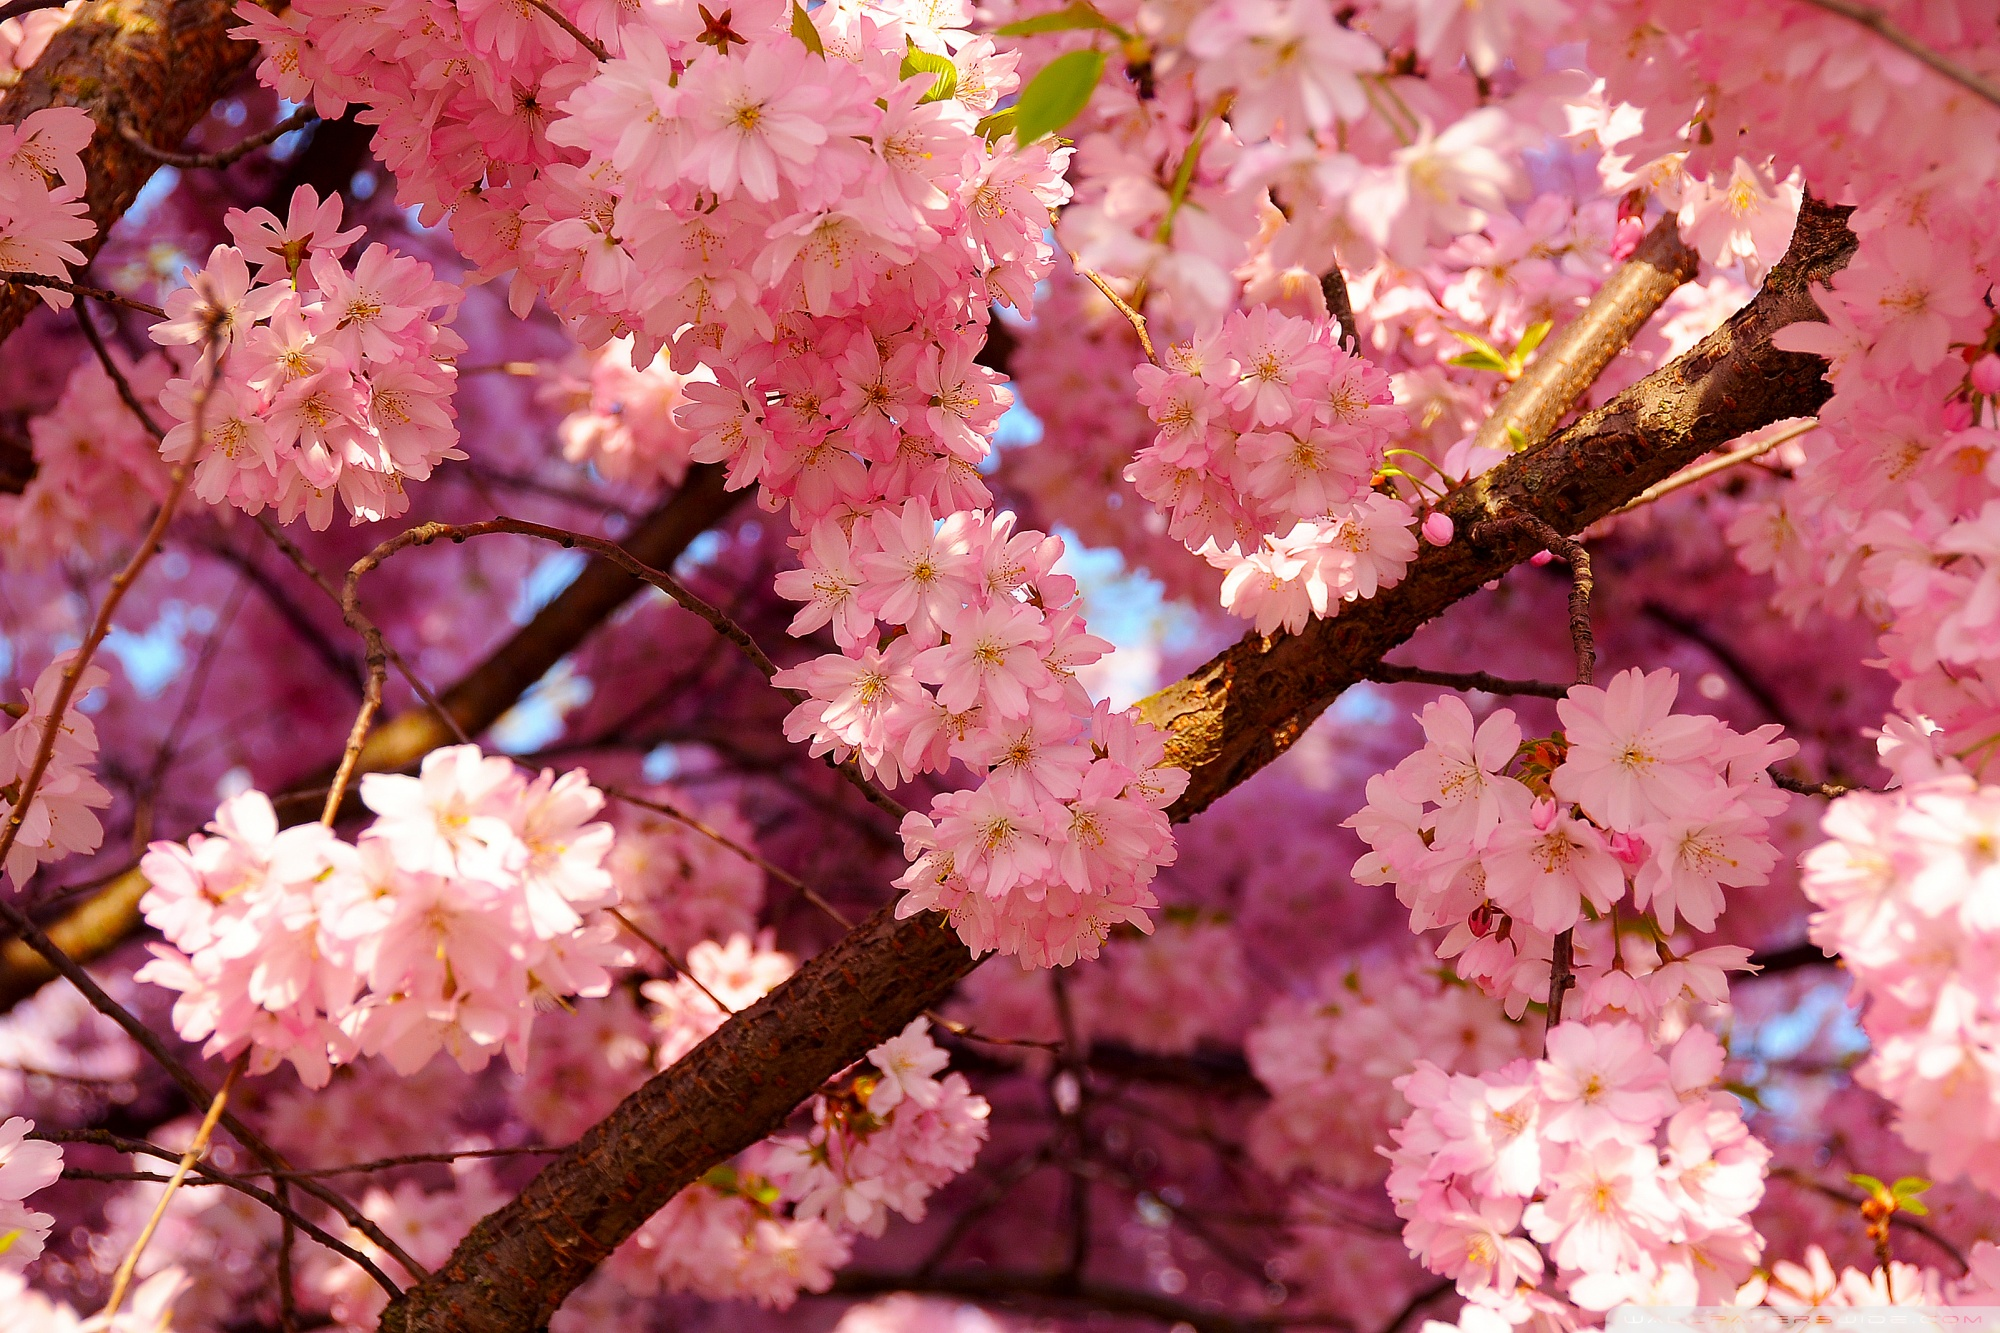 Spring Aesthetic Wallpaper Posted By Michelle Johnson